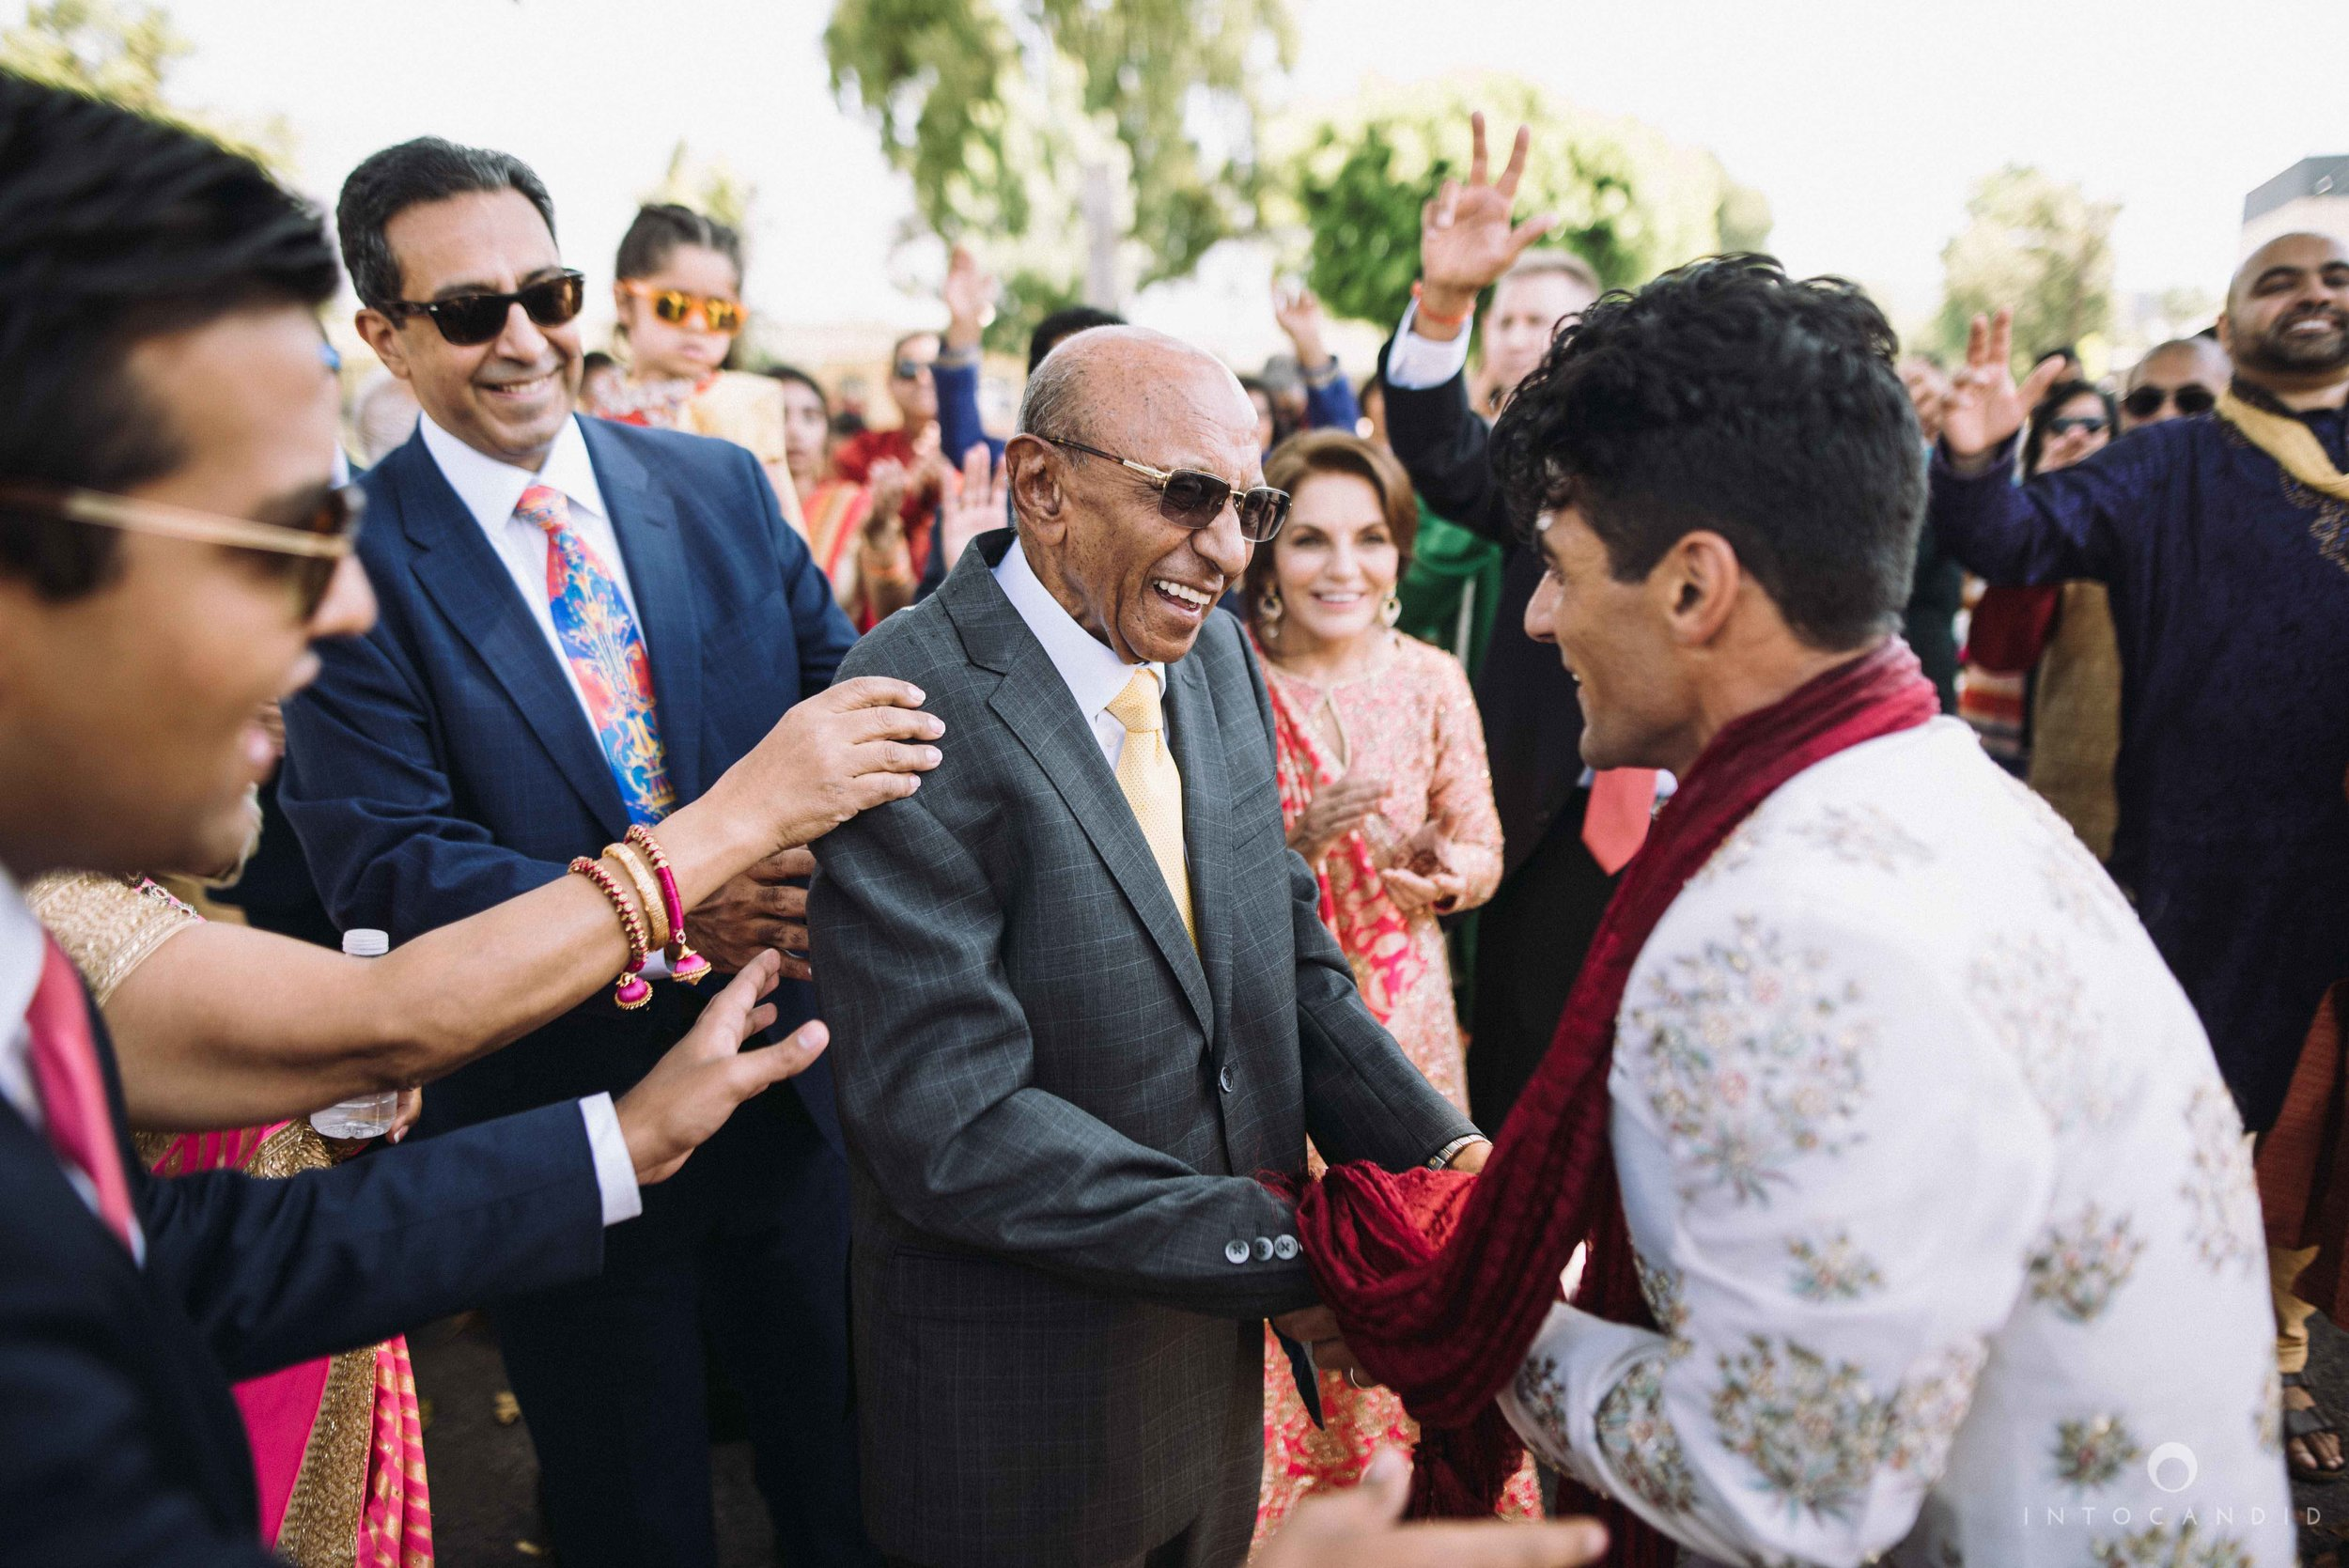 LosAngeles_Indian_Wedding_Photographer_AS_079.jpg